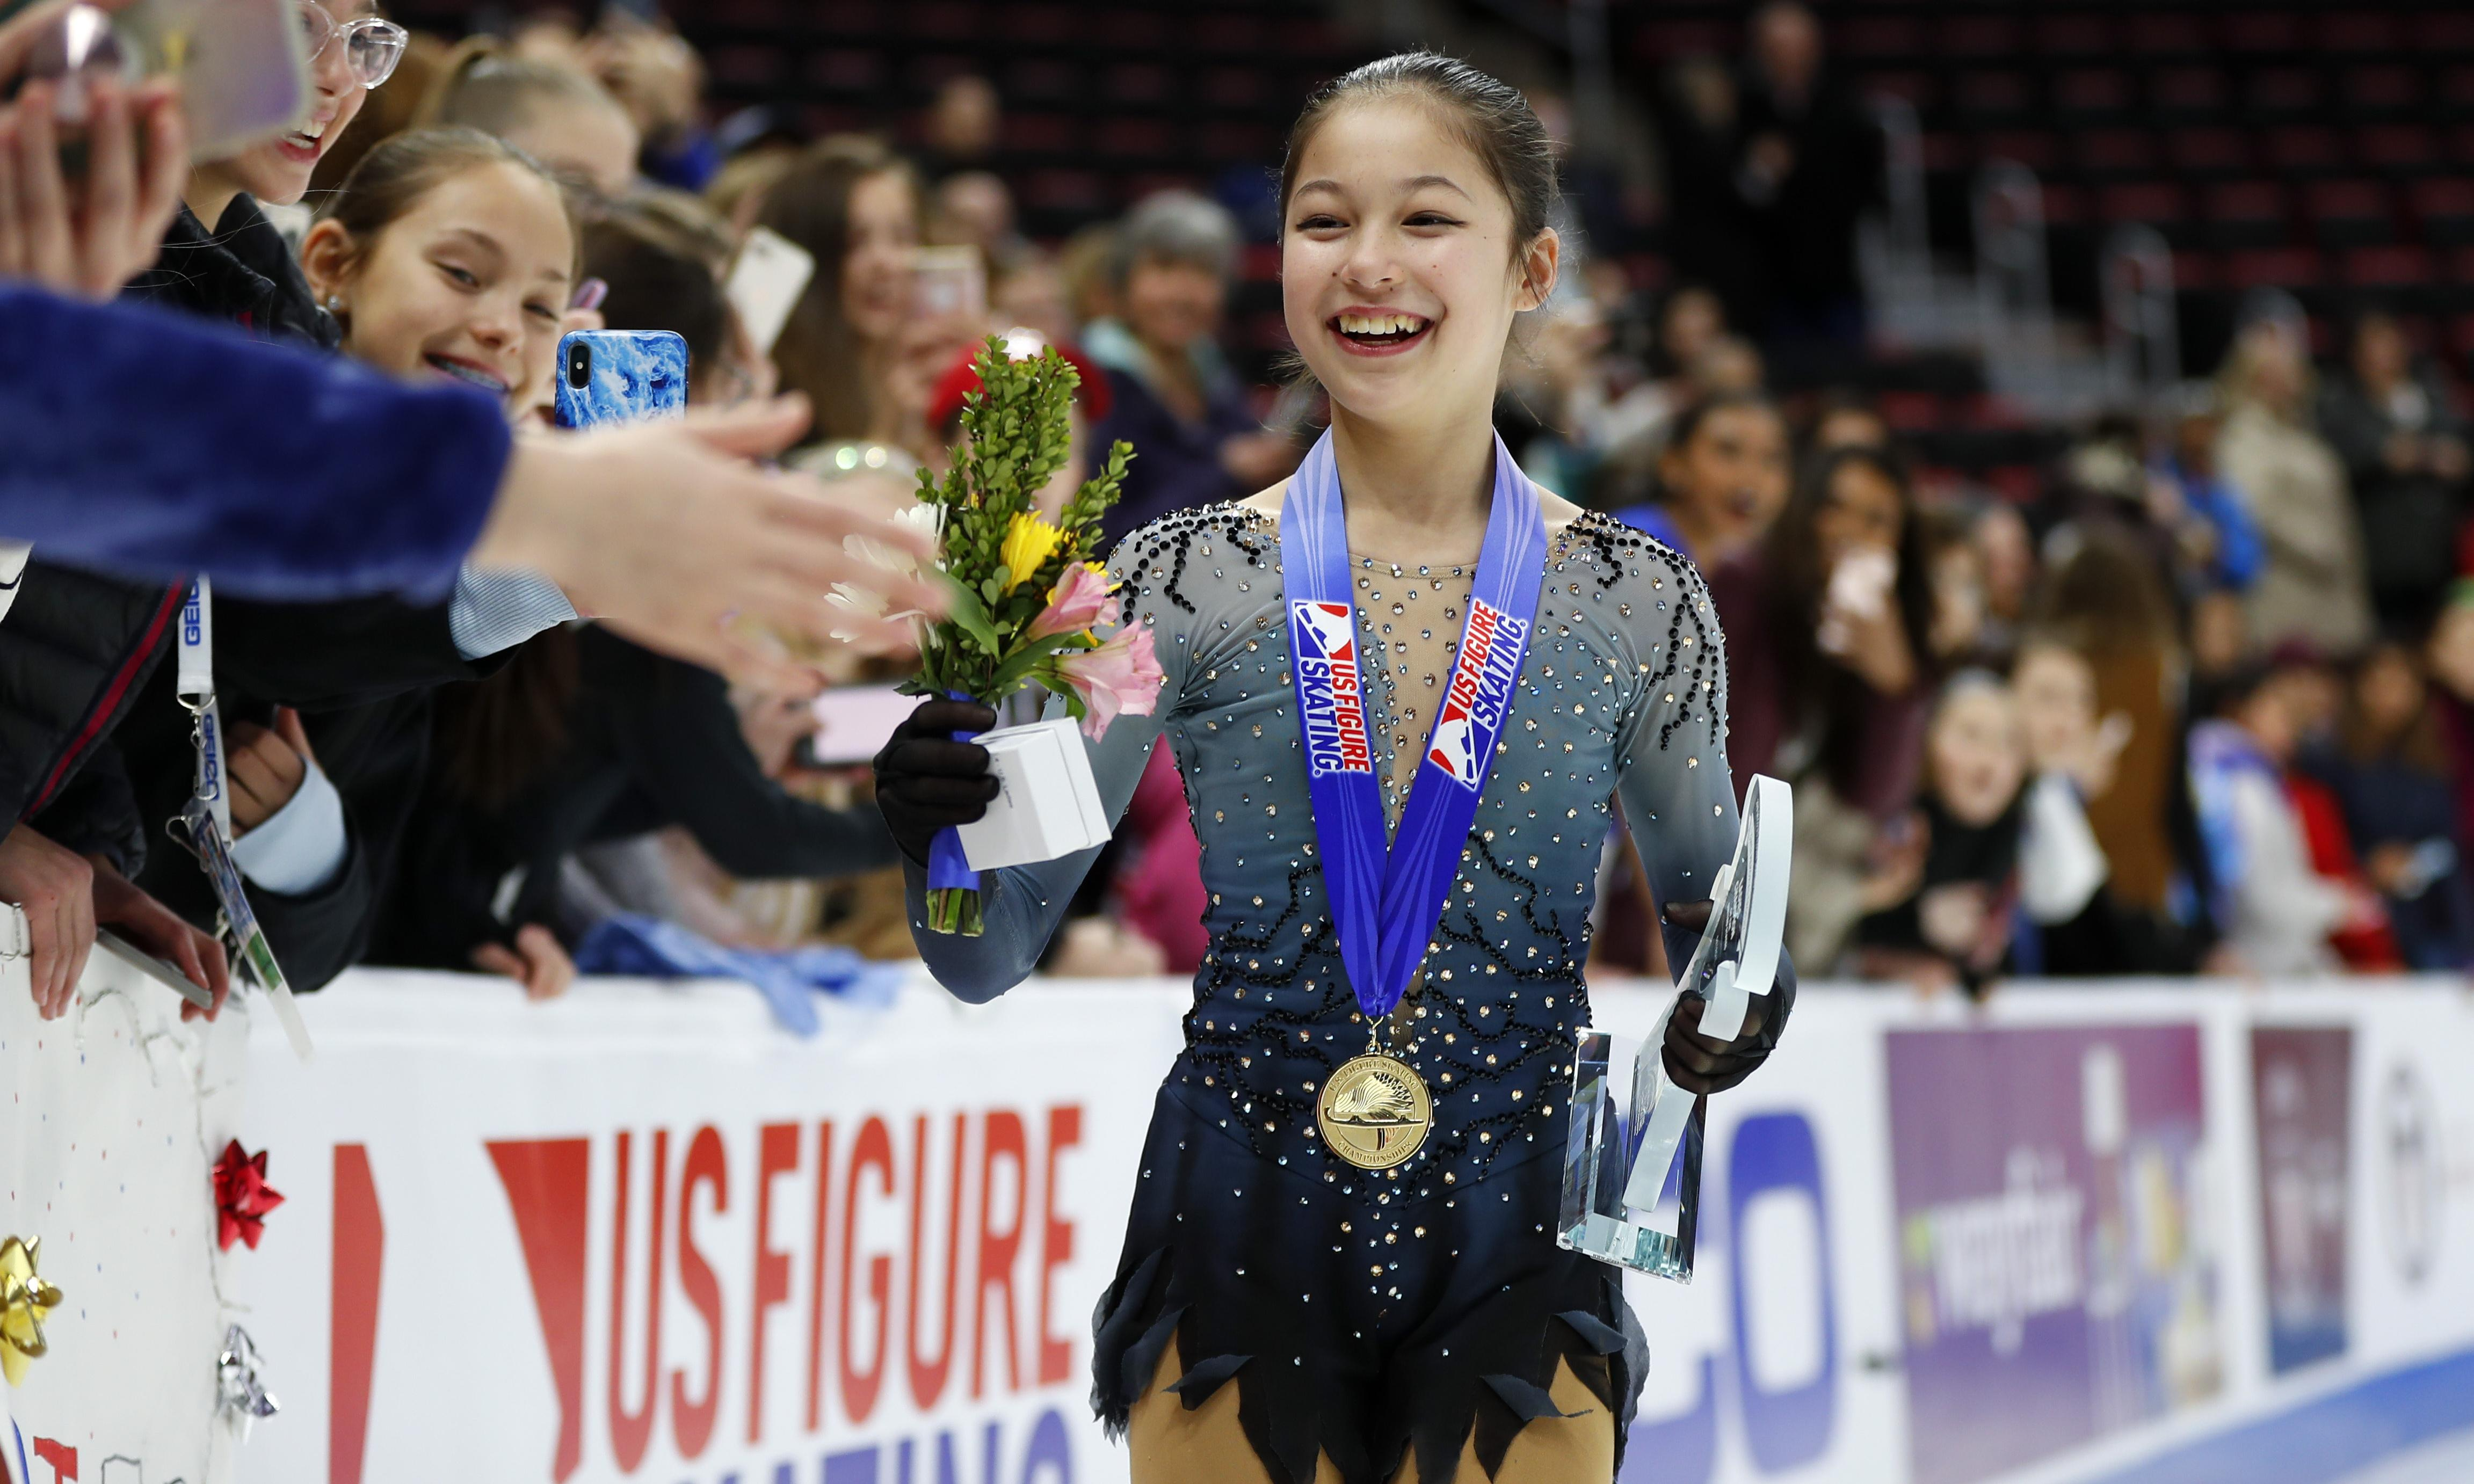 Alysa Liu's remarkable rise: is 13 too young to be an elite athlete?